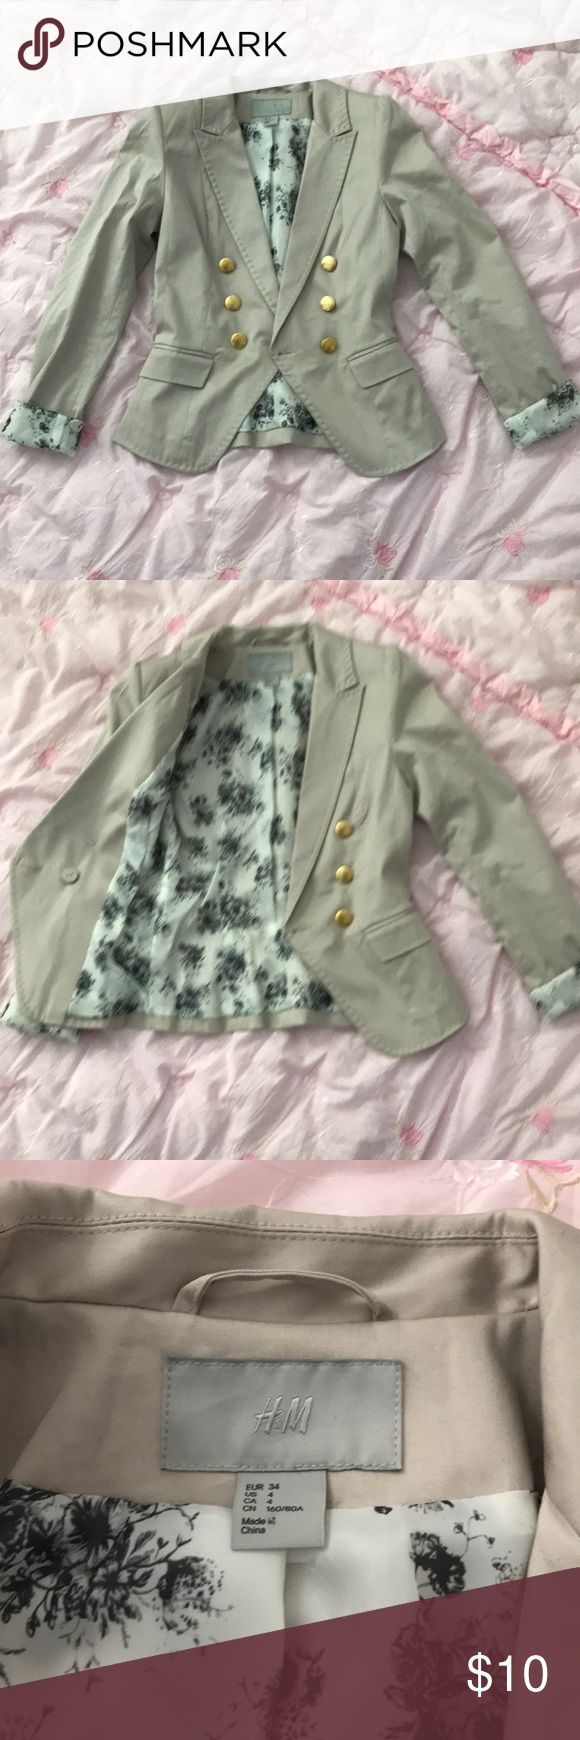 H&M blazer in US4 H&M blazer size US4/EUR34 Almost new, only tried on at home. I was already pushing it with sz 4 when I was really sz6  but it was the last one at the store. After I had my daughter, I never really went back to pre-pregnancy weight😖Only crinkled due to storage. My loss is your gain. H&M Jackets & Coats Blazers